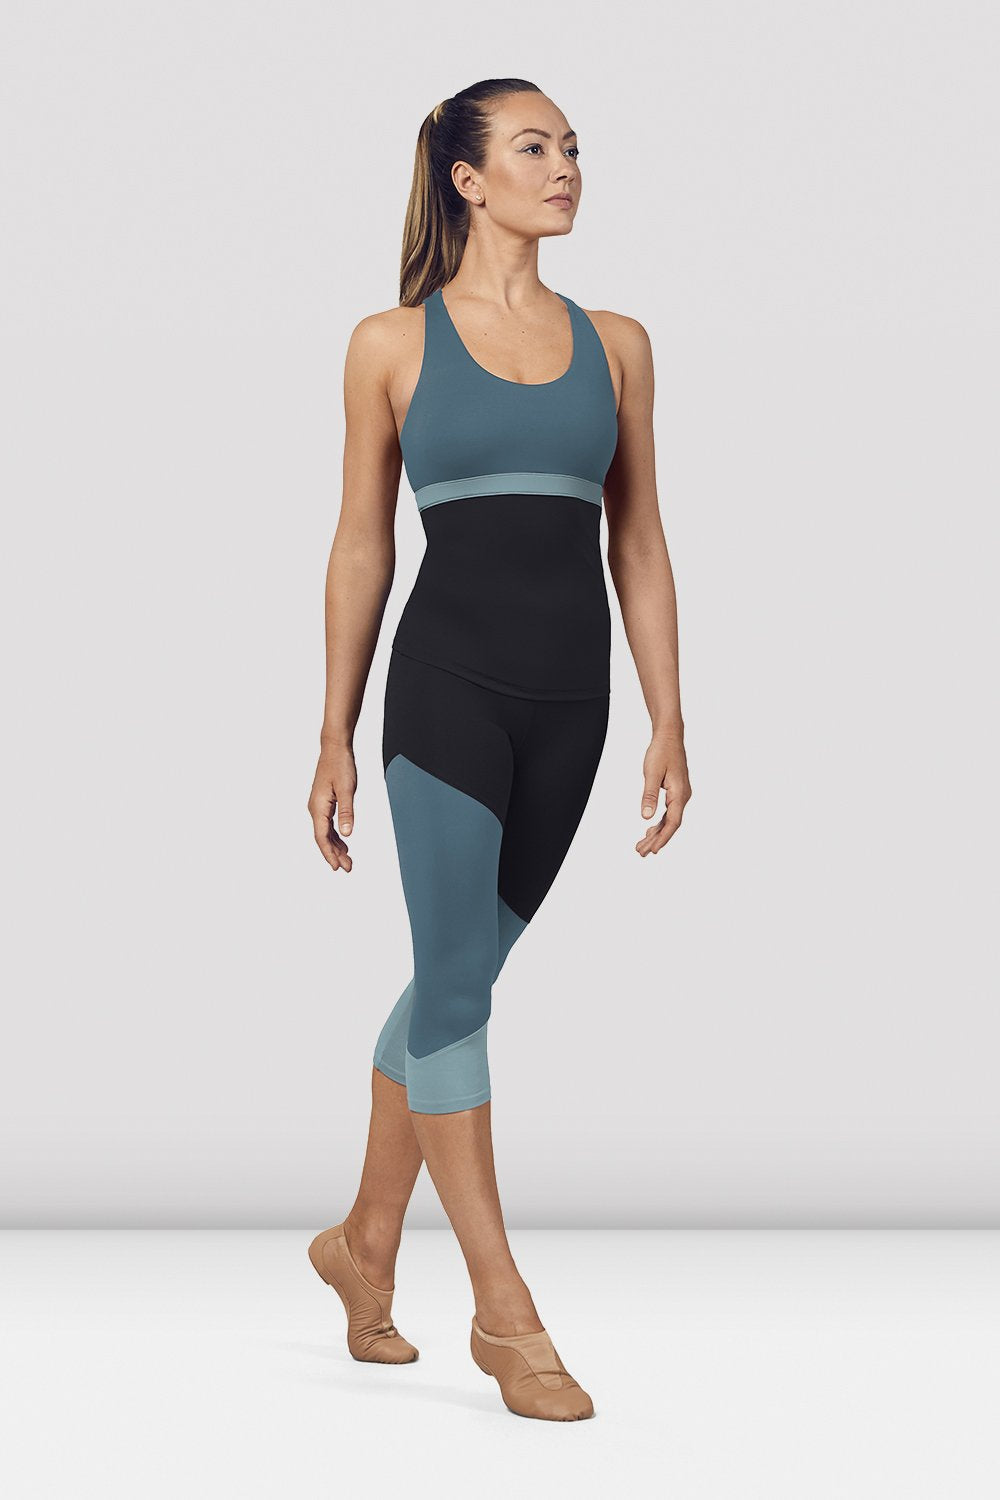 Seaport Bloch Ladies Scoop Neck Cross Back Tank Top on female model in parallel fourth position on releve facing corner